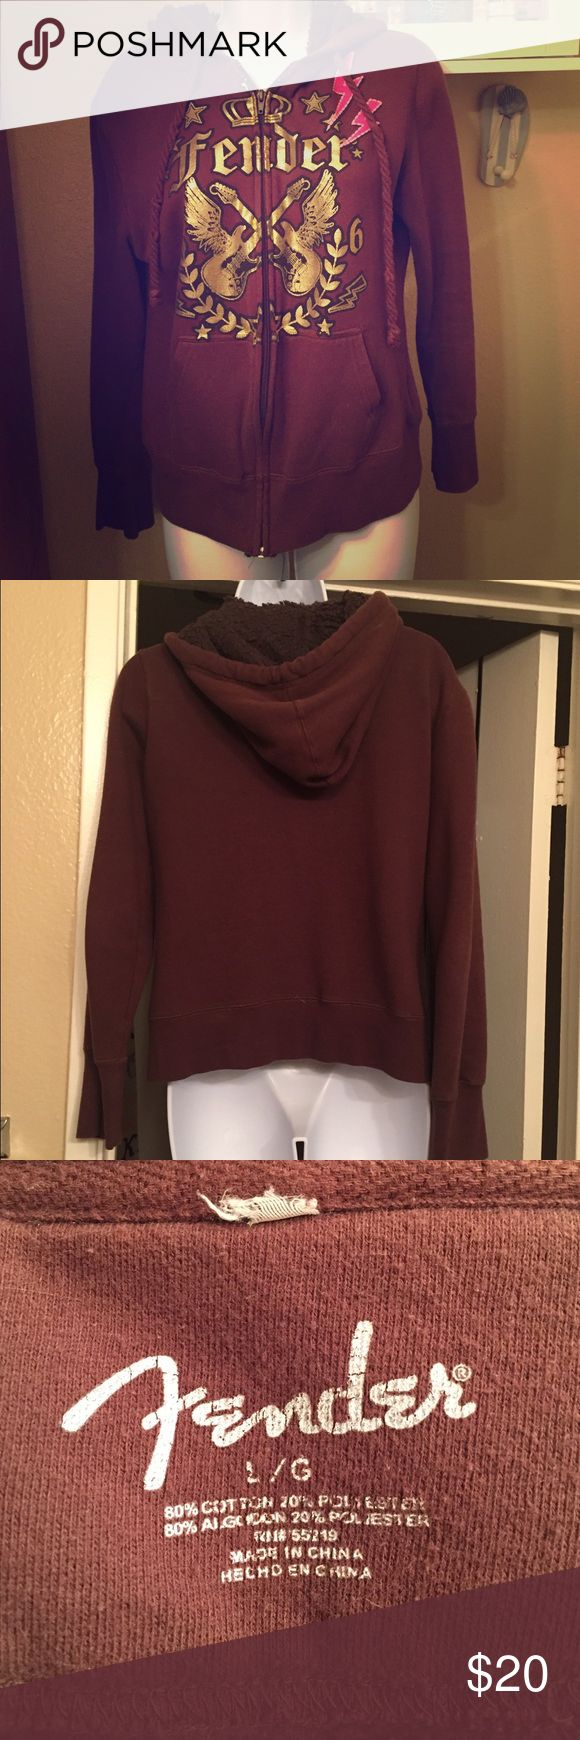 """⚡️🎸FENDER ⚡️🎸 Ladies hoodie 💙💁🏻 Ladies brown zip up hoodie with Fender guitar silk-screen design, from Kohls. Worn a few times, fully cleaned, """"like-new"""" condition. Tag cut from neck line because it was itchy & at the time I wasn't planning to sell! Misses size """"L"""" but runs more like a medium. Super comfy & warm 😍 Tops Sweatshirts & Hoodies"""